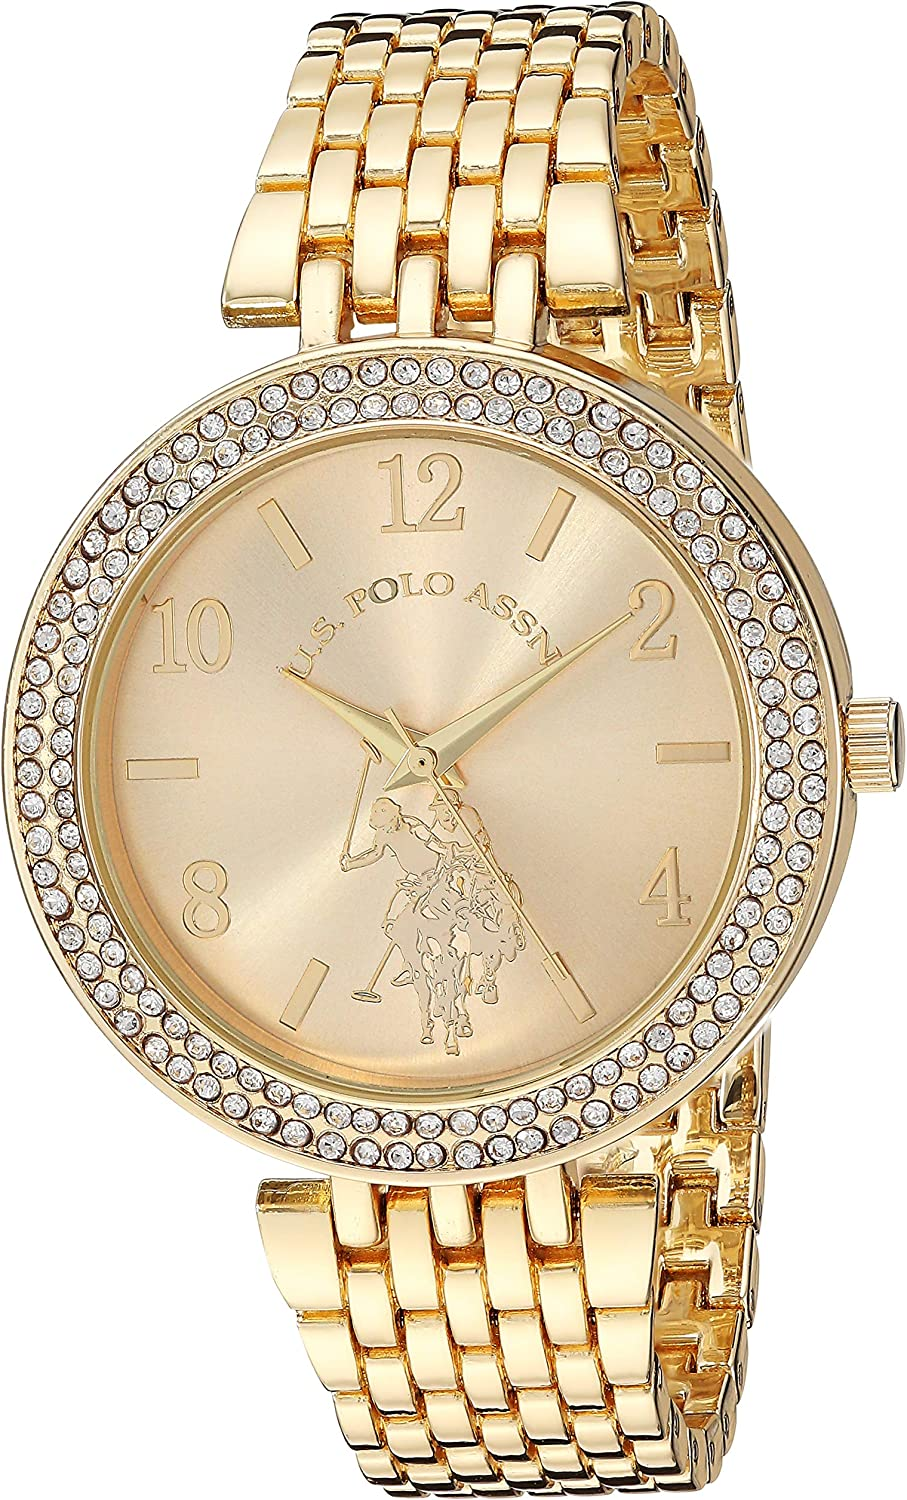 U.S. Polo Assn. Women s Stainless Steel Quartz Watch with Alloy Strap, Silver, 18.6 Model USC40216